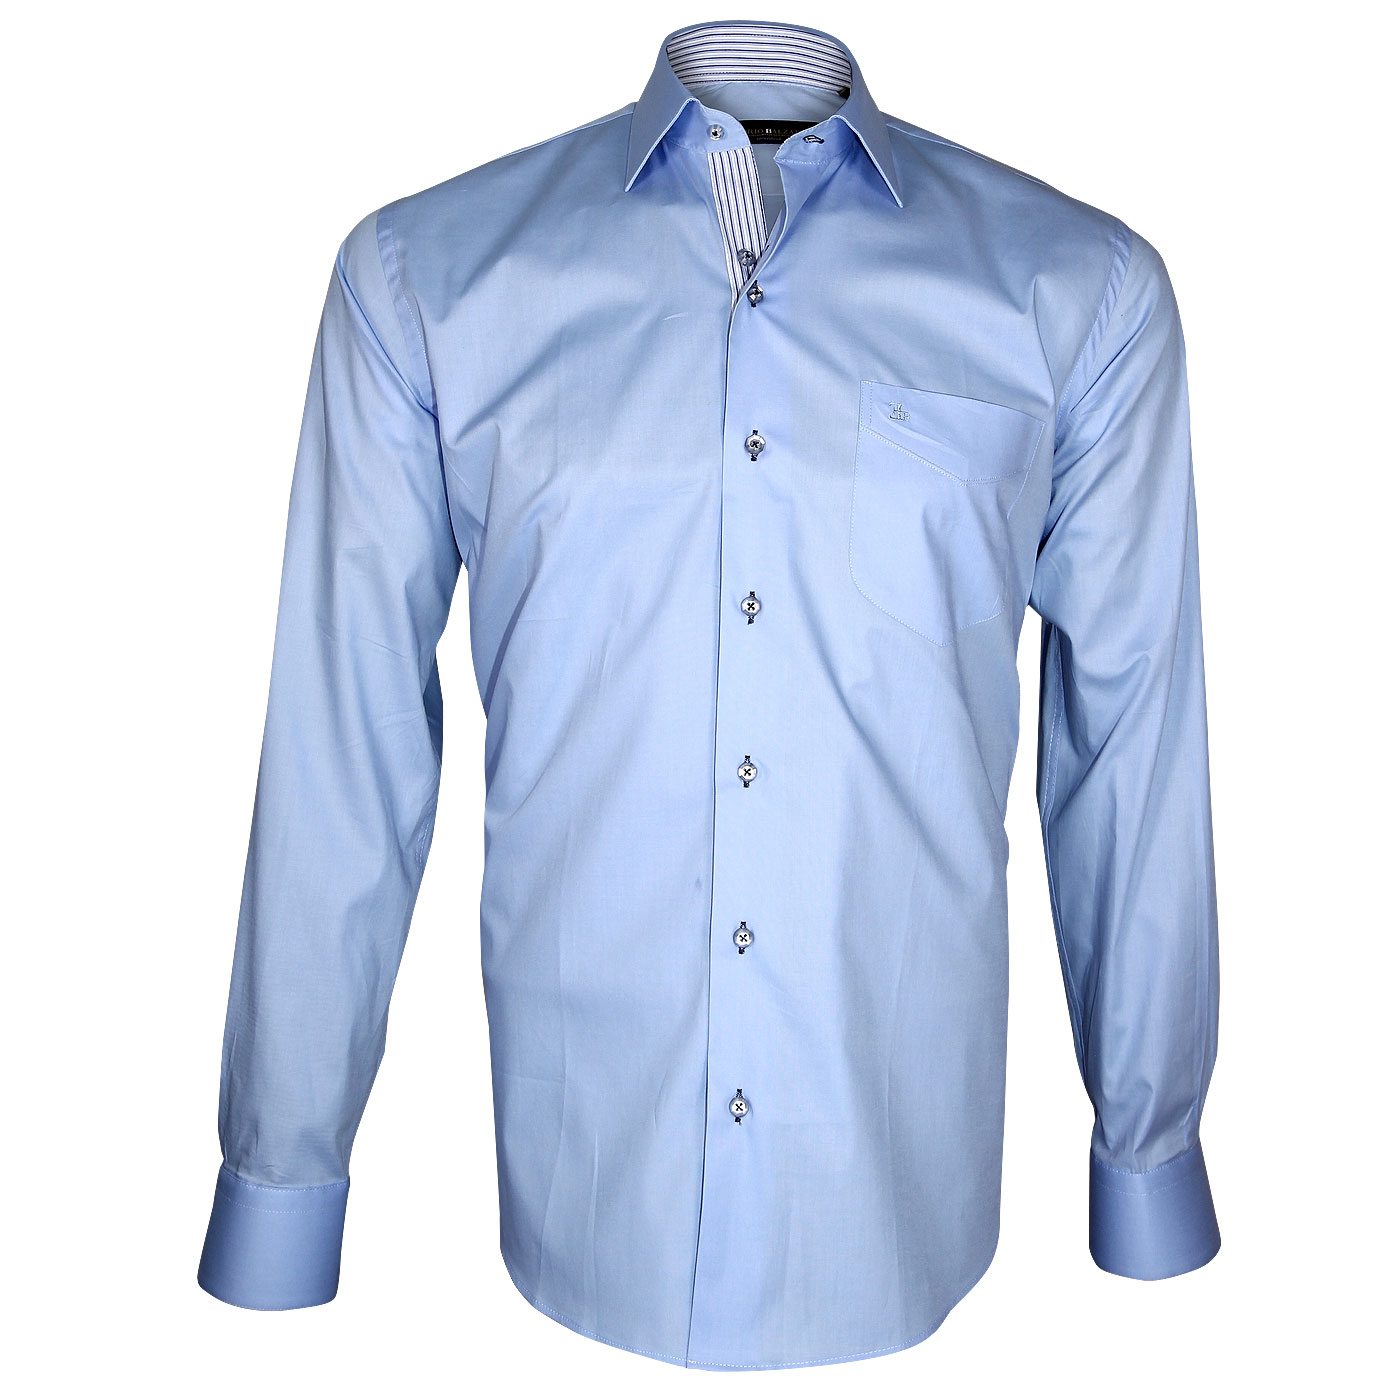 Men's Shirts Cheap price on Webmenshirts.com